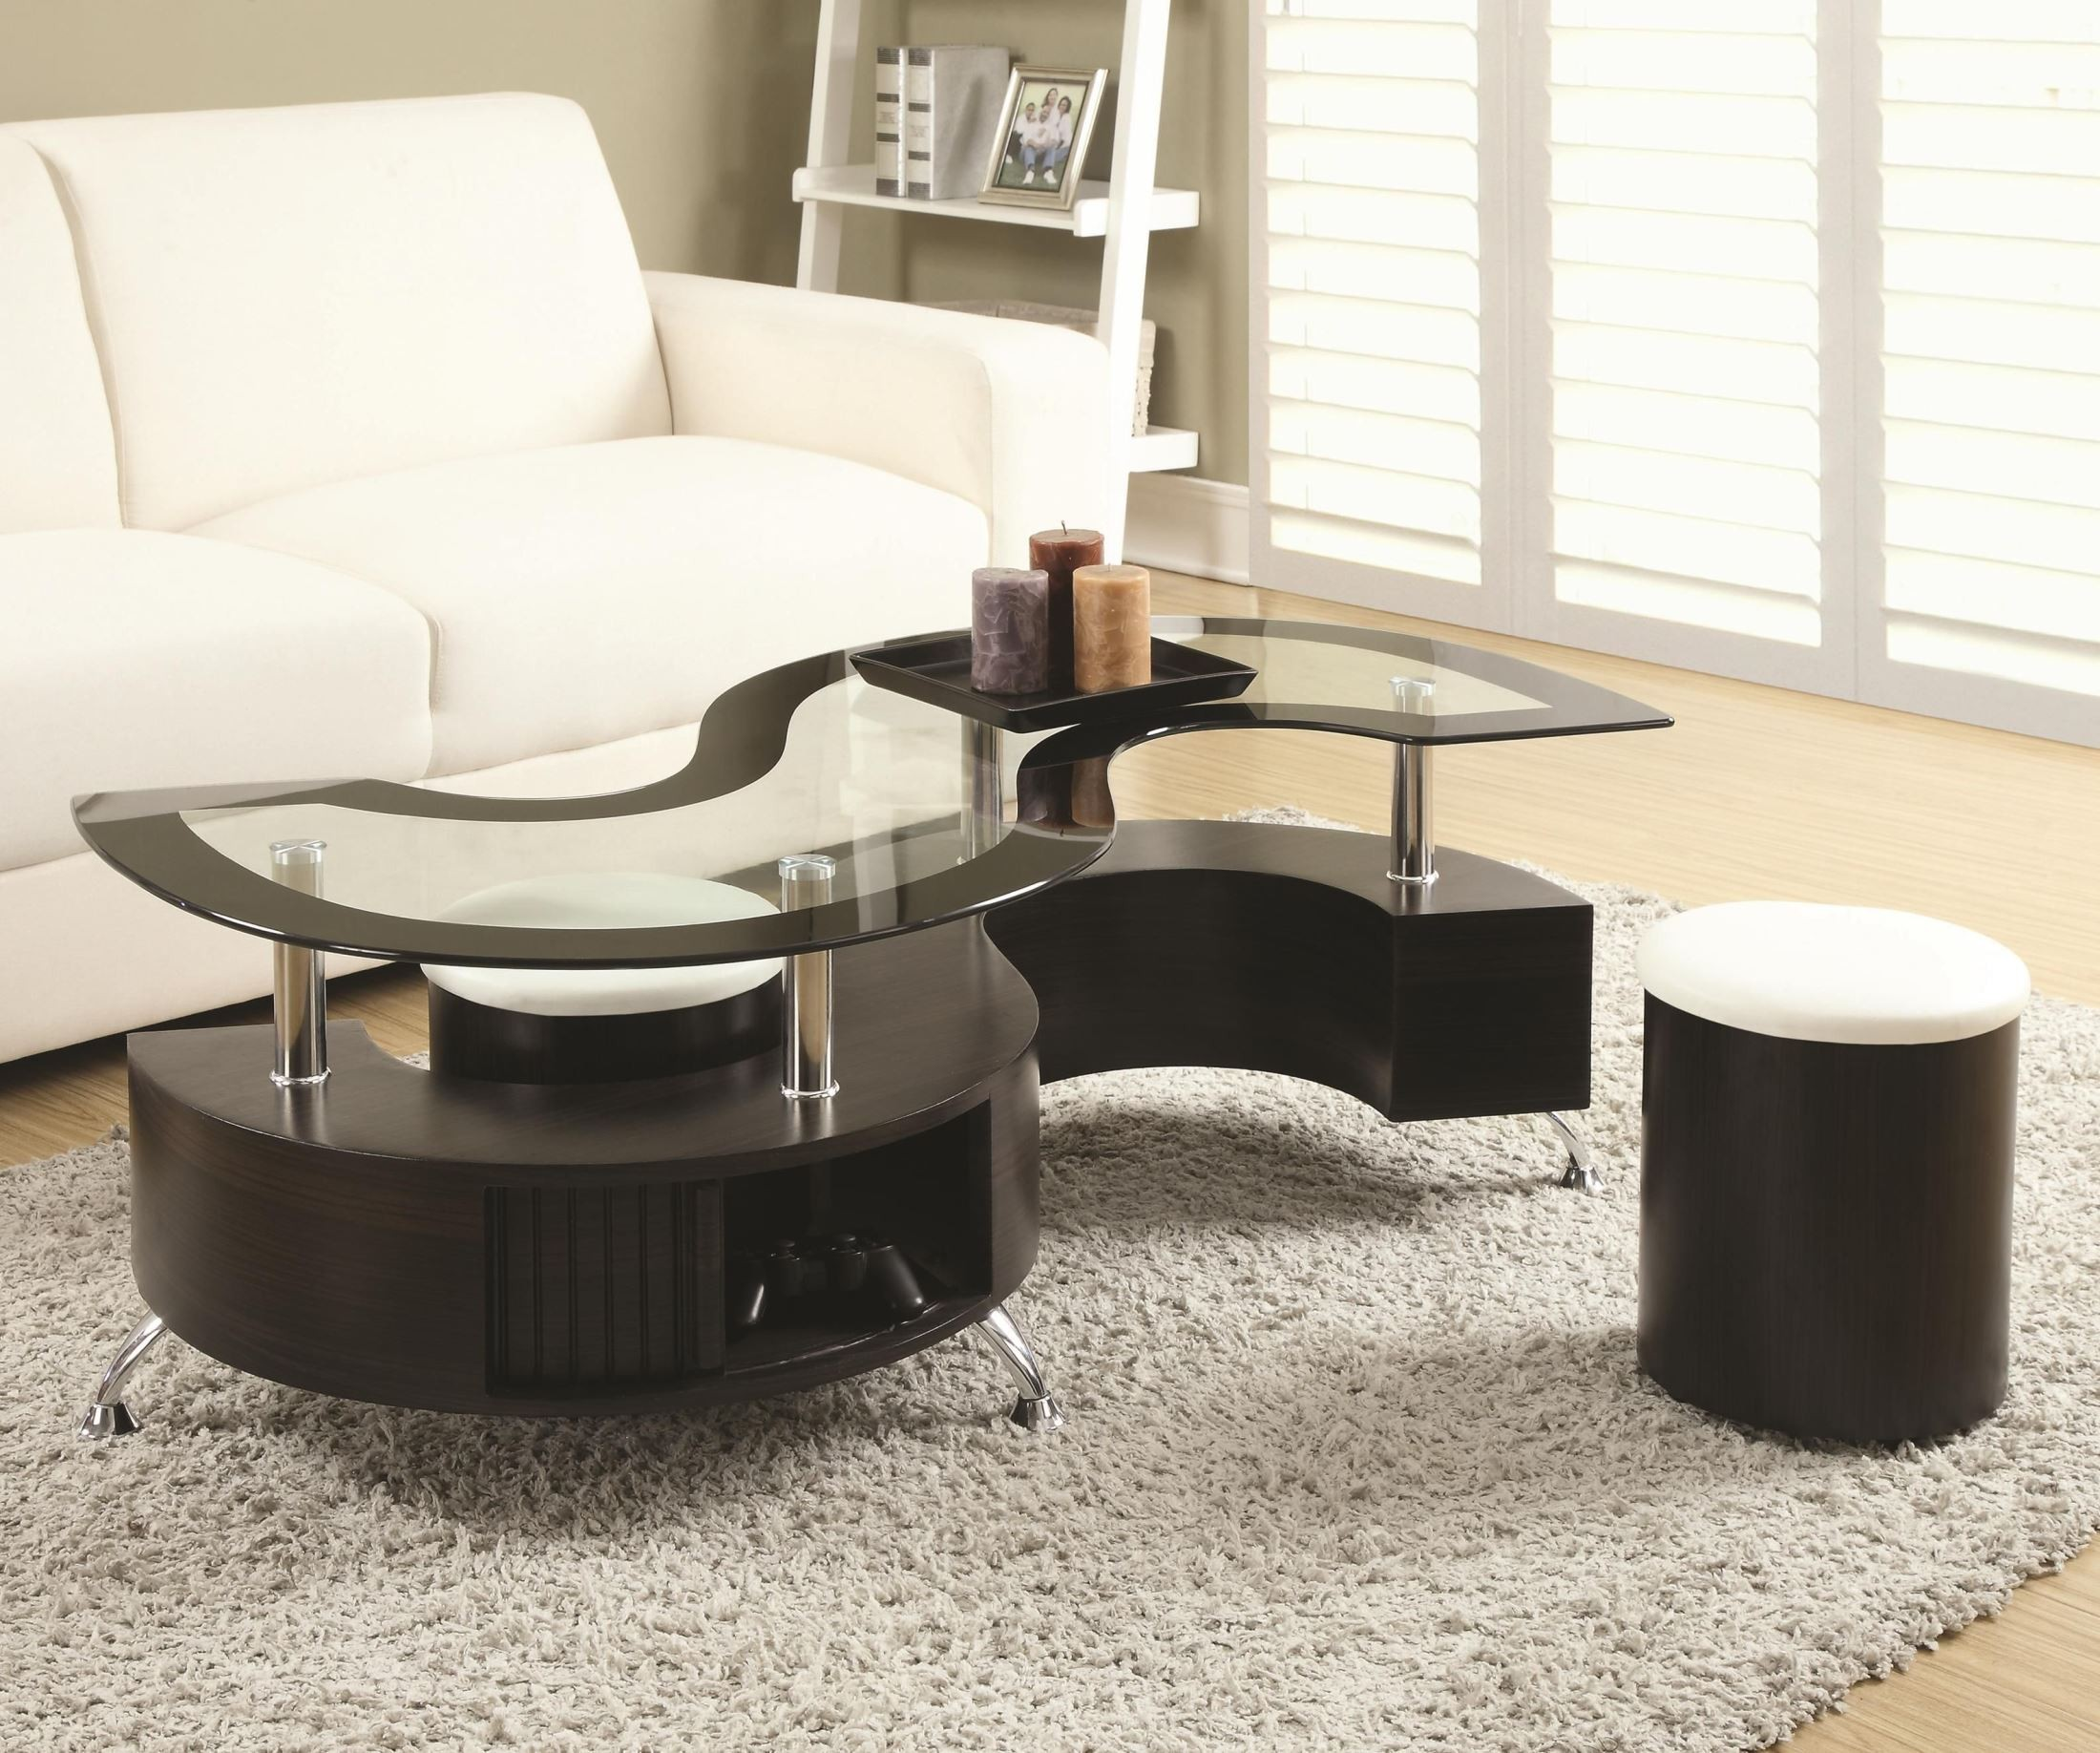 720218 Dark Brown Coffee Table And Stool From Coaster 720218 Coleman Furniture